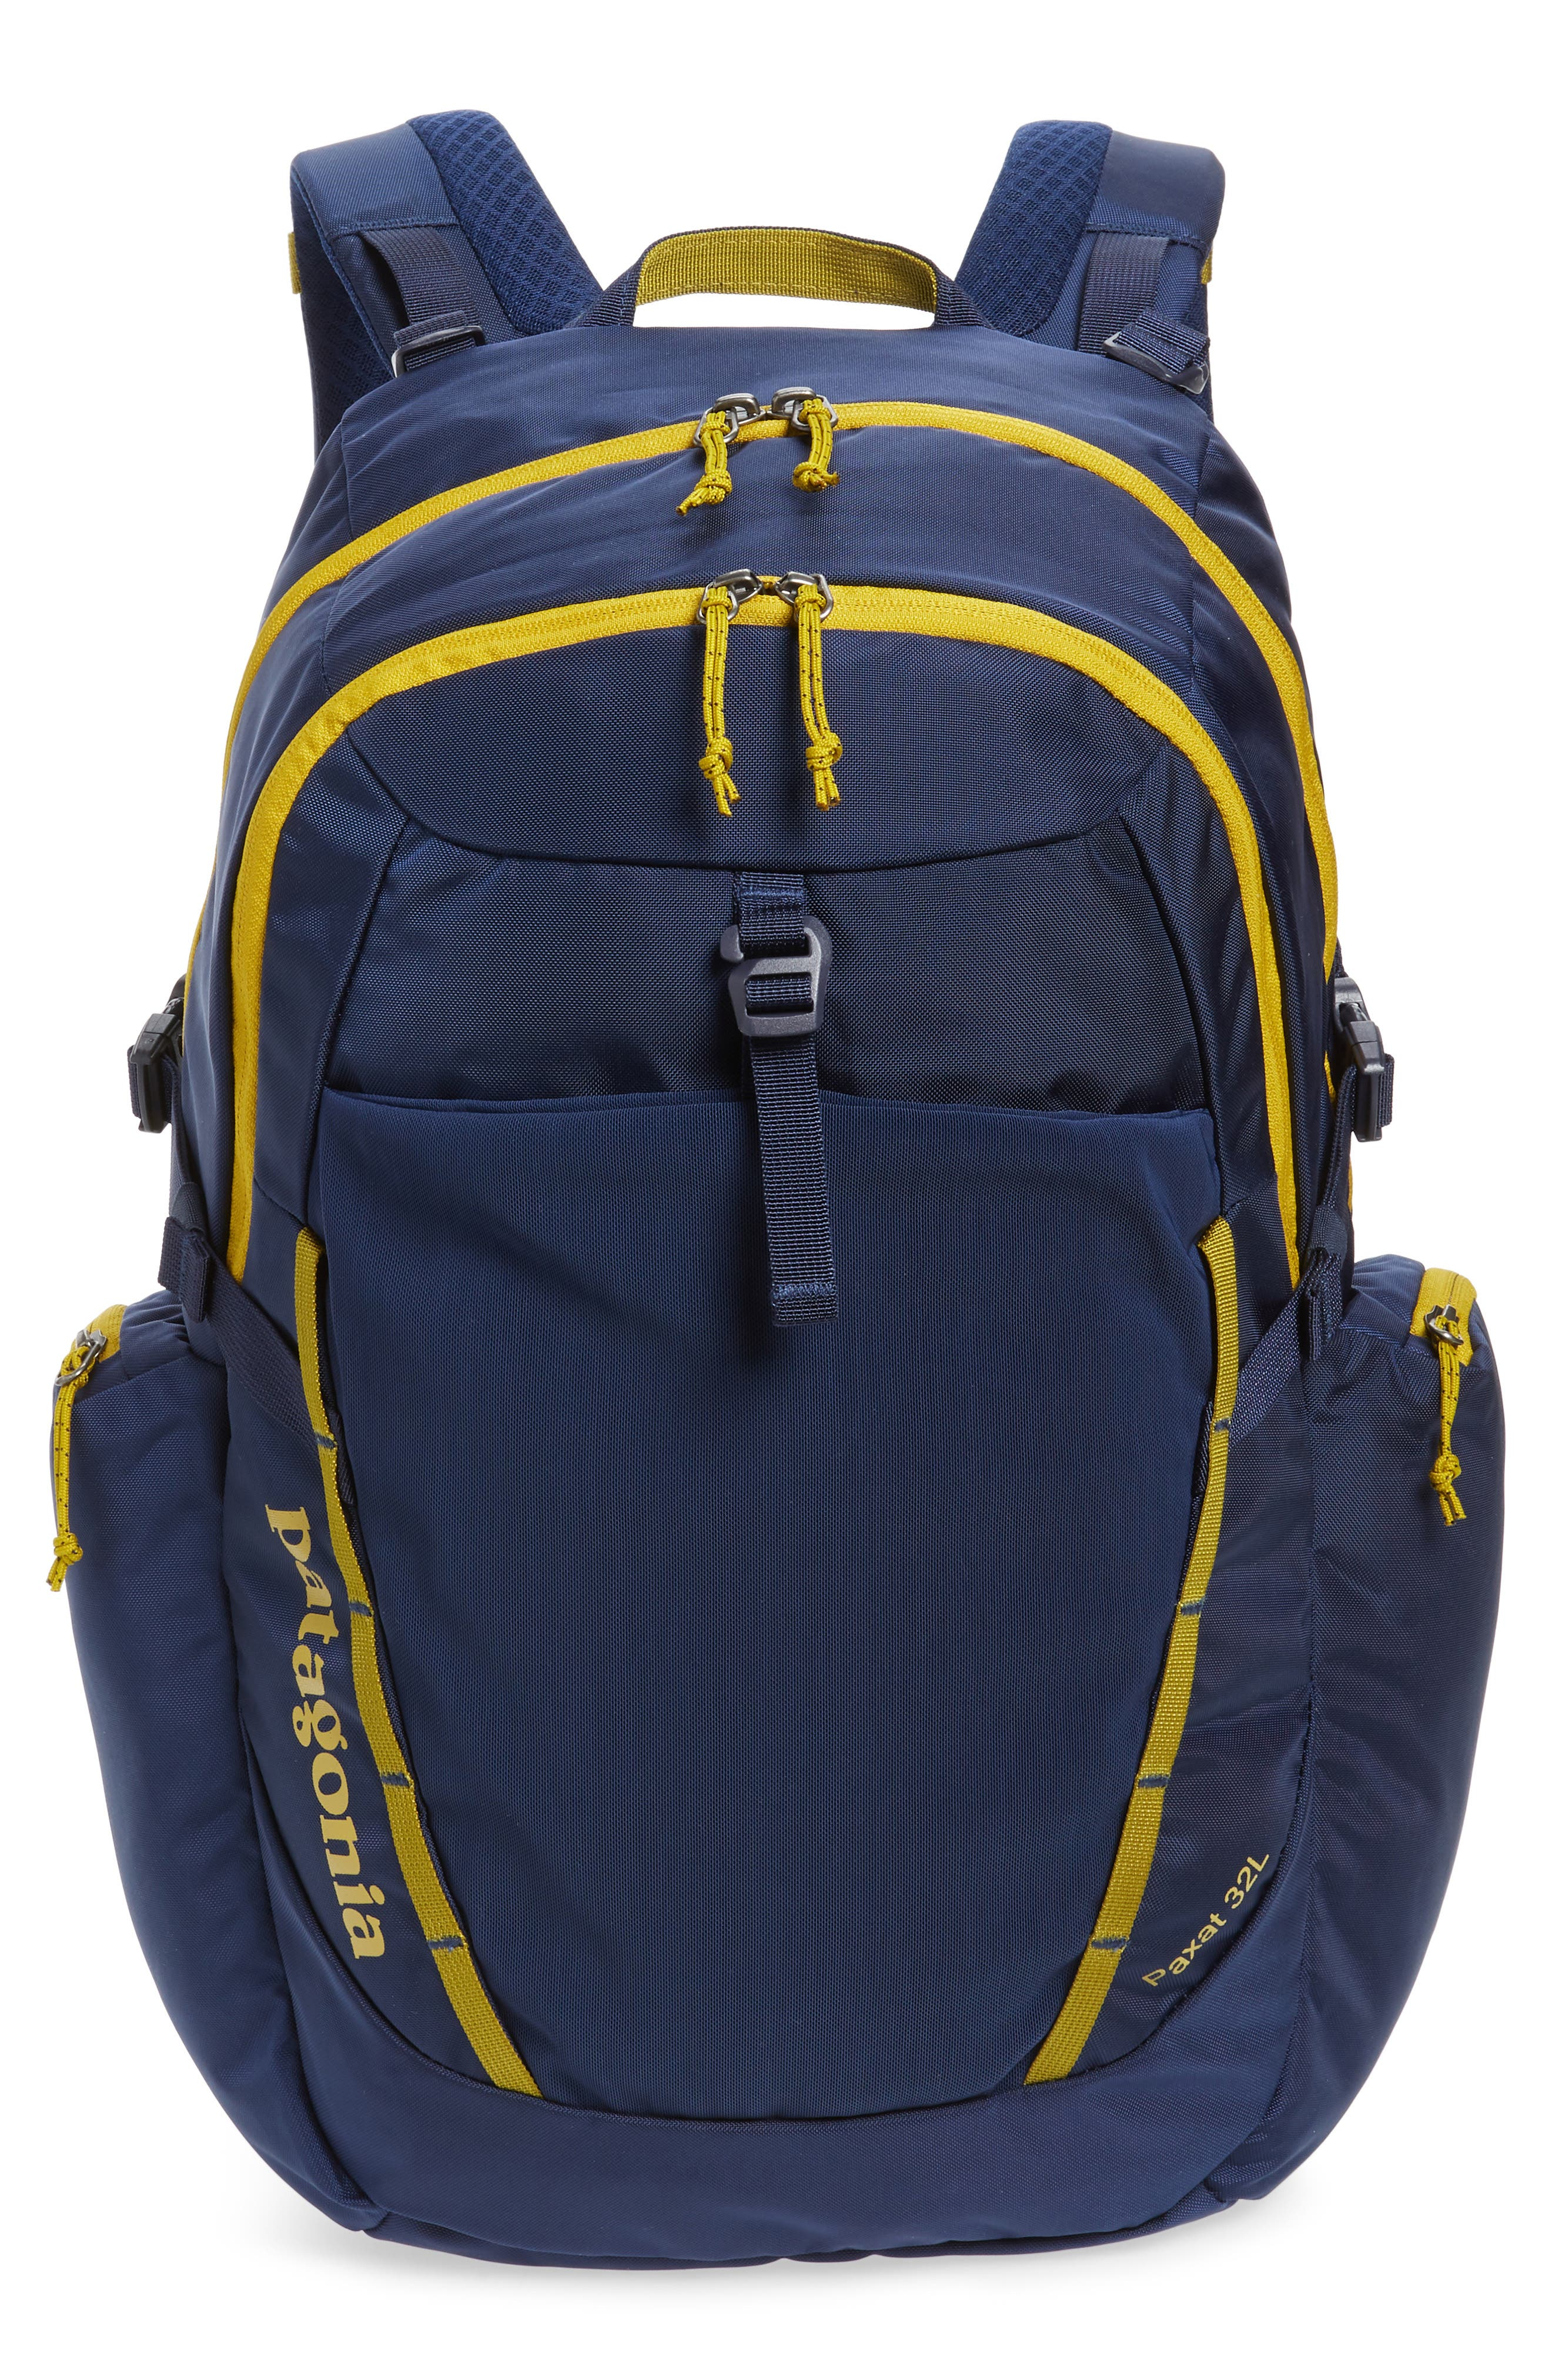 Paxat 32-Liter Backpack, Main, color, CLASSIC NAVY